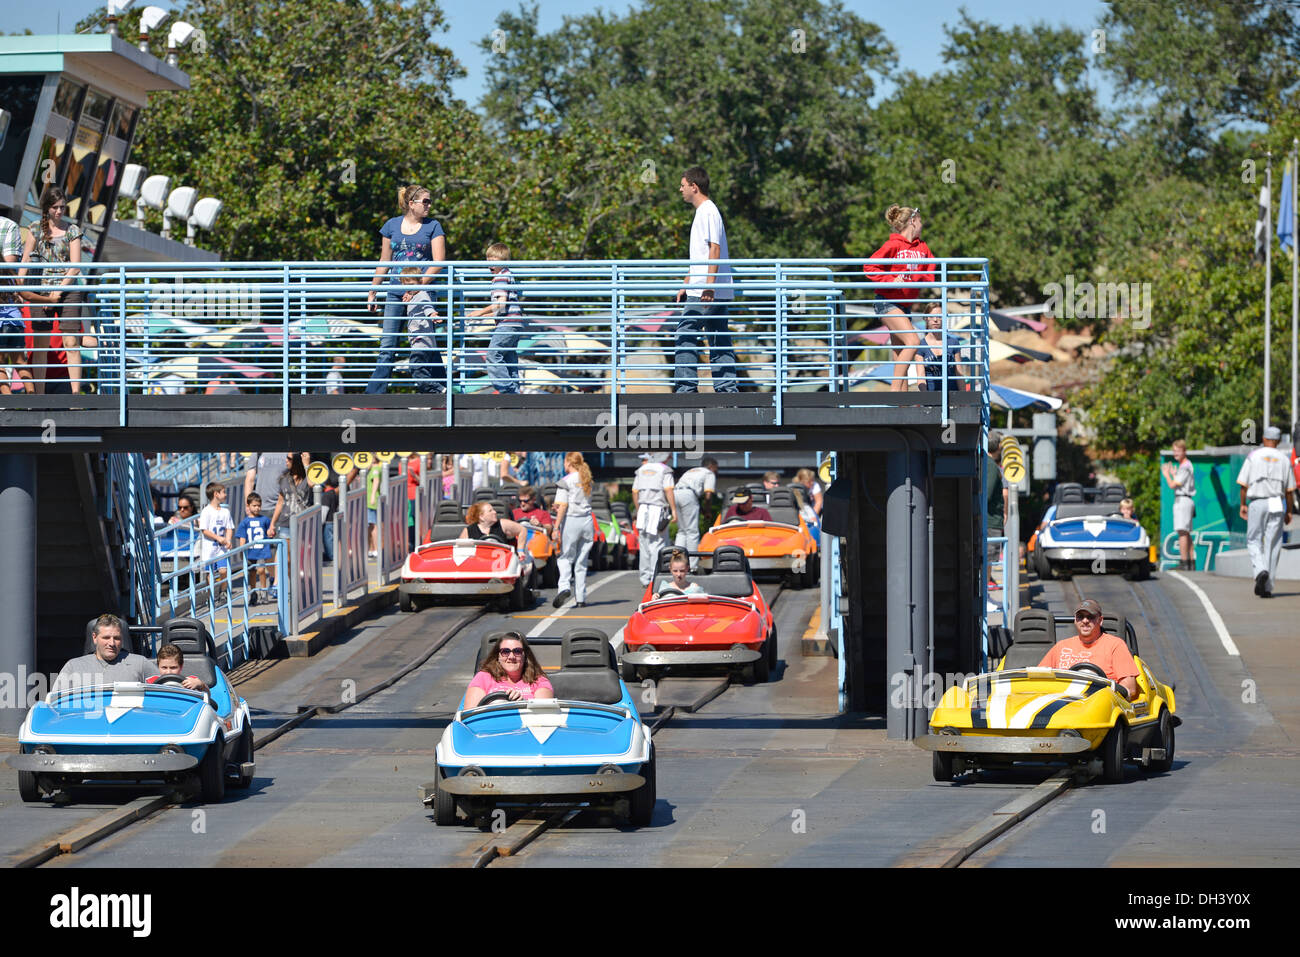 Car Racing Orlando Florida